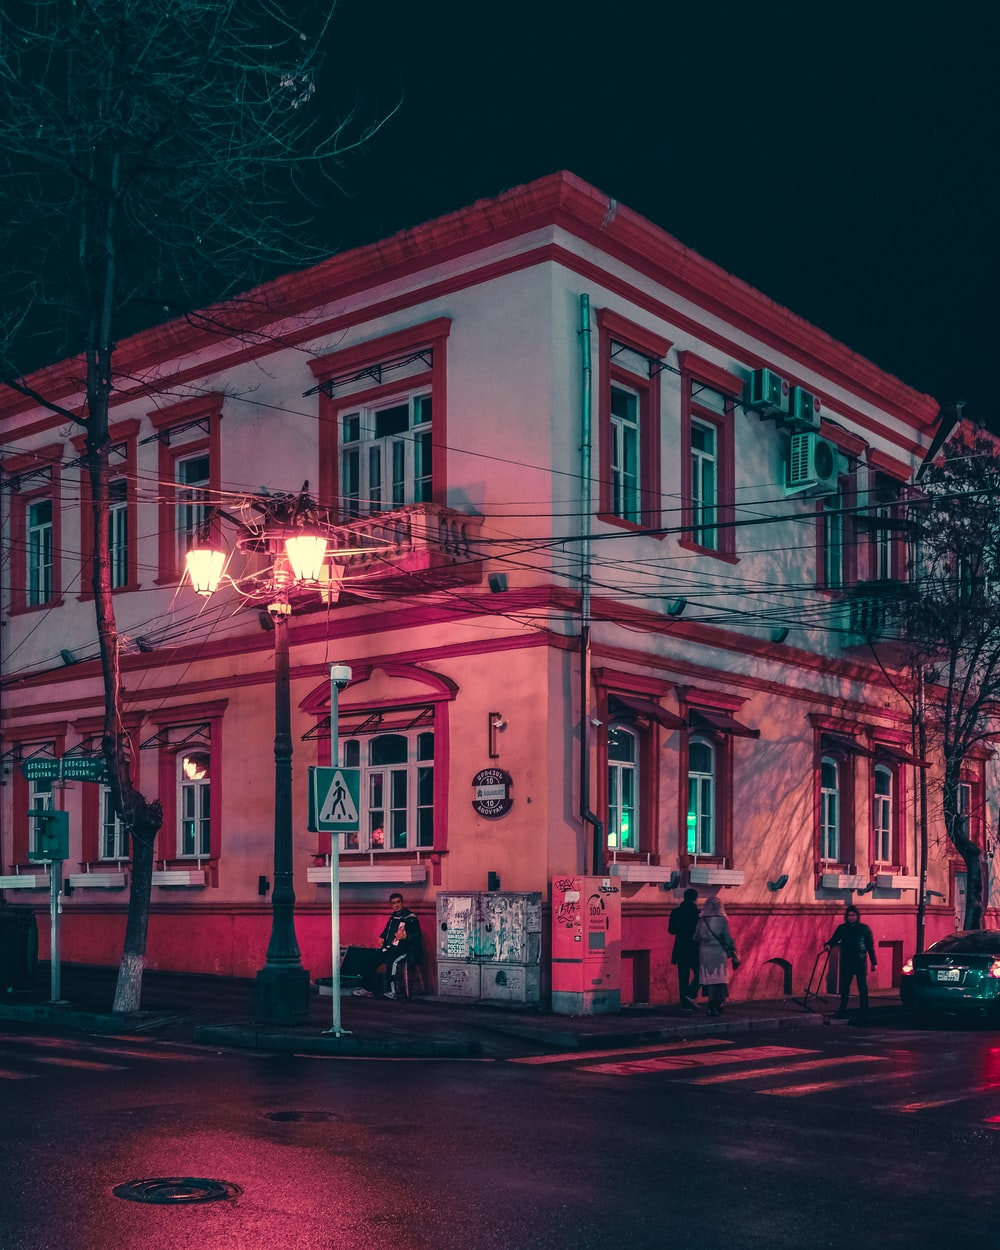 red and white concrete building during night time